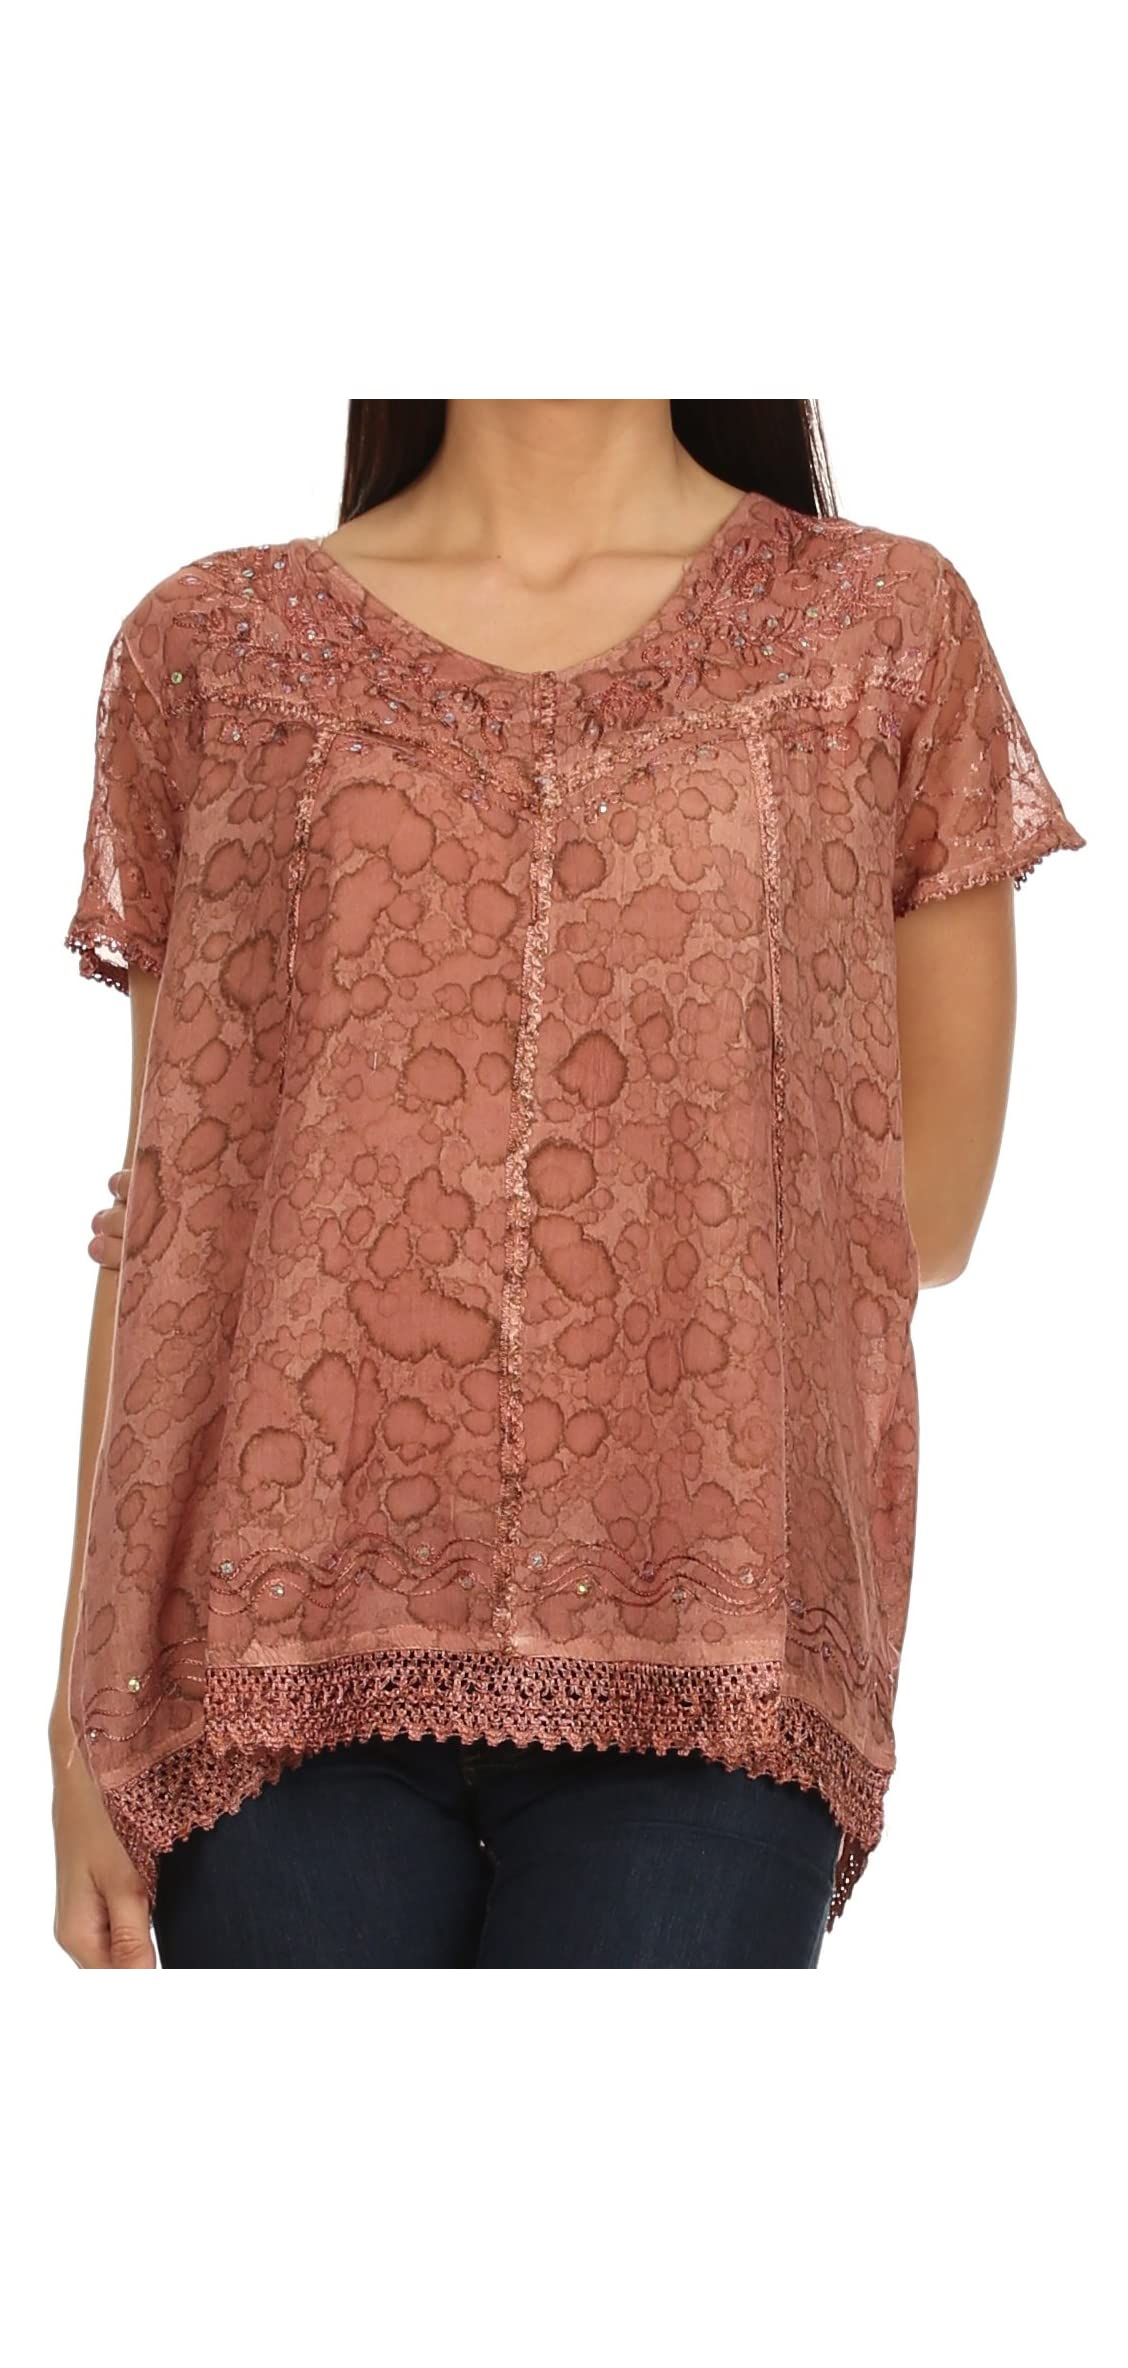 Charolette Embroidery And Seqiun Accents Blouse